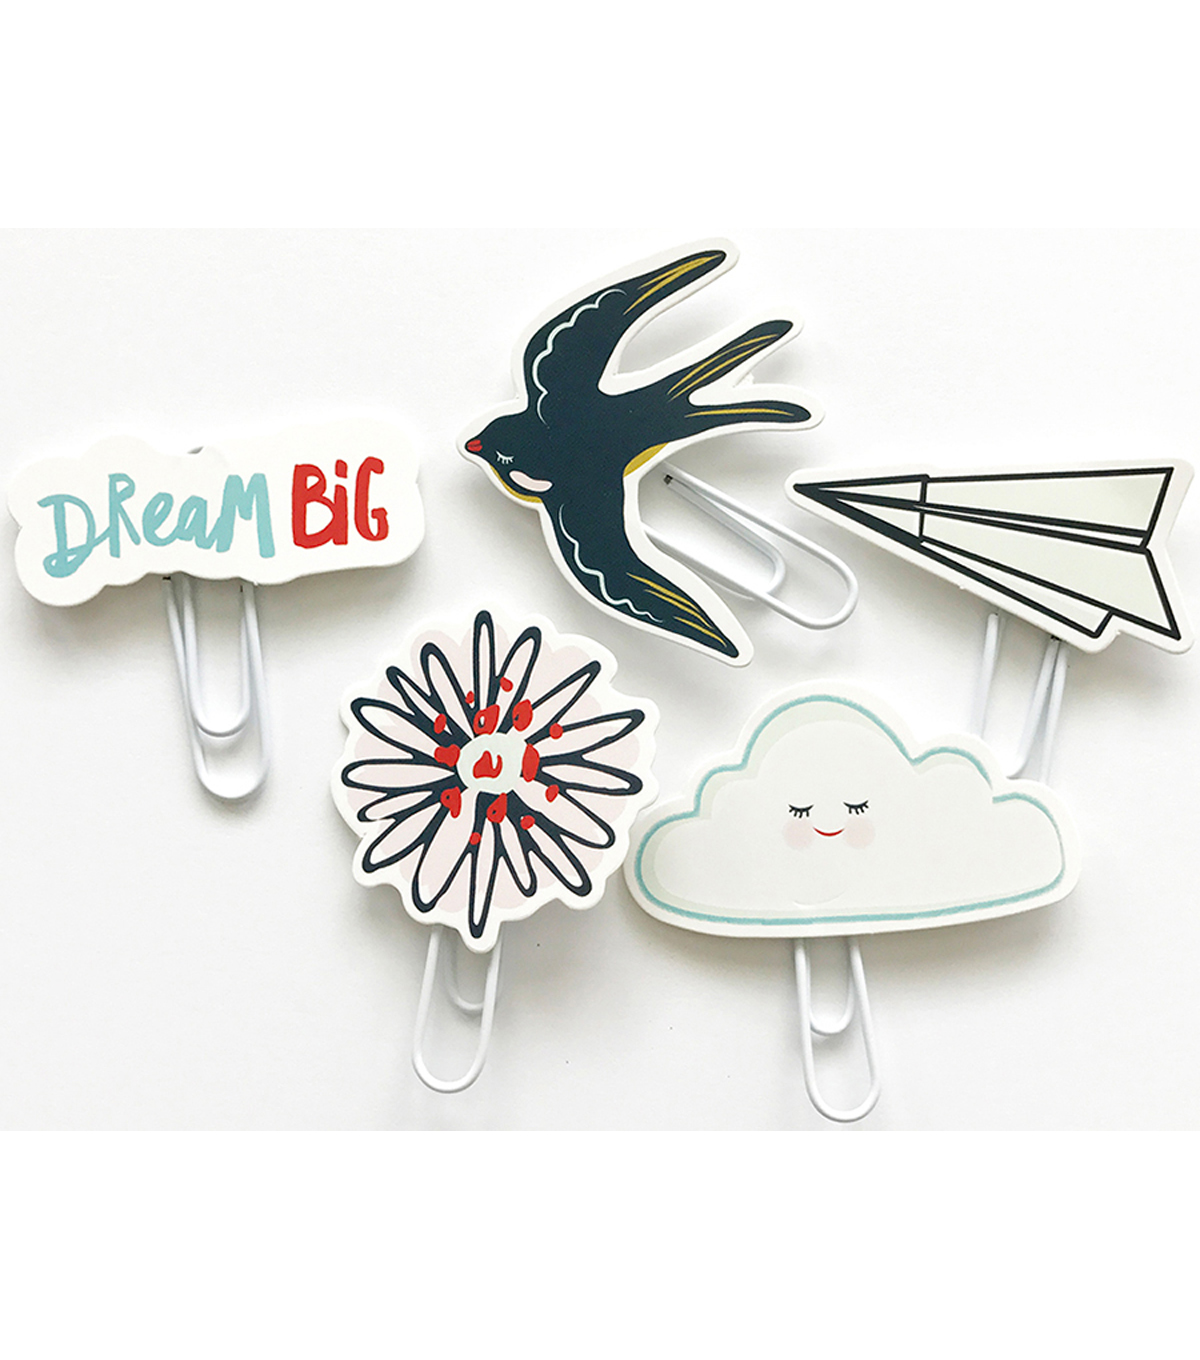 Dream Big Die-Cut Paper Clips